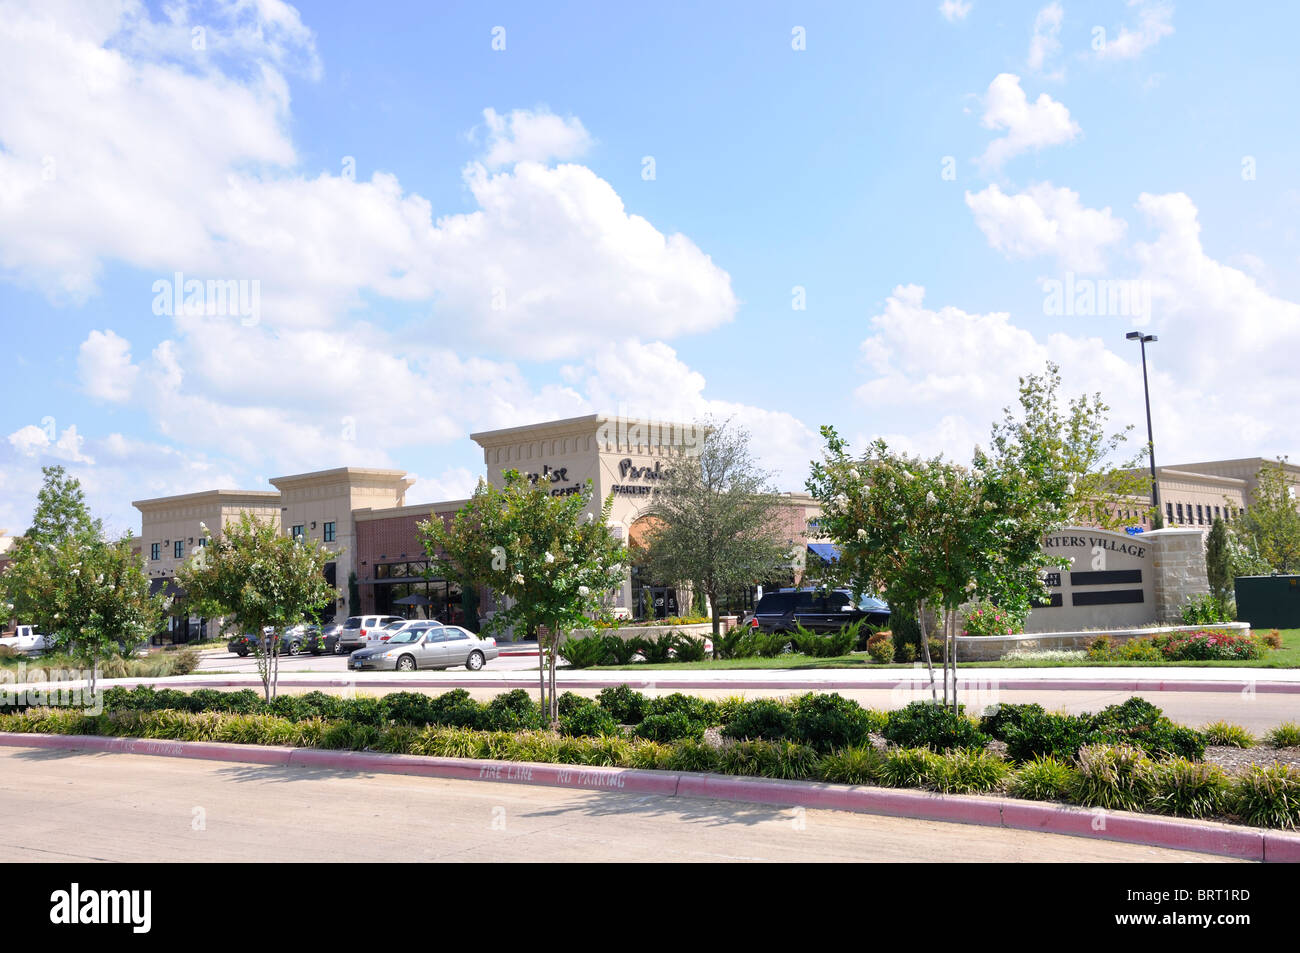 Shopping Plaza And Restaurants In Plano Texas Usa Stock